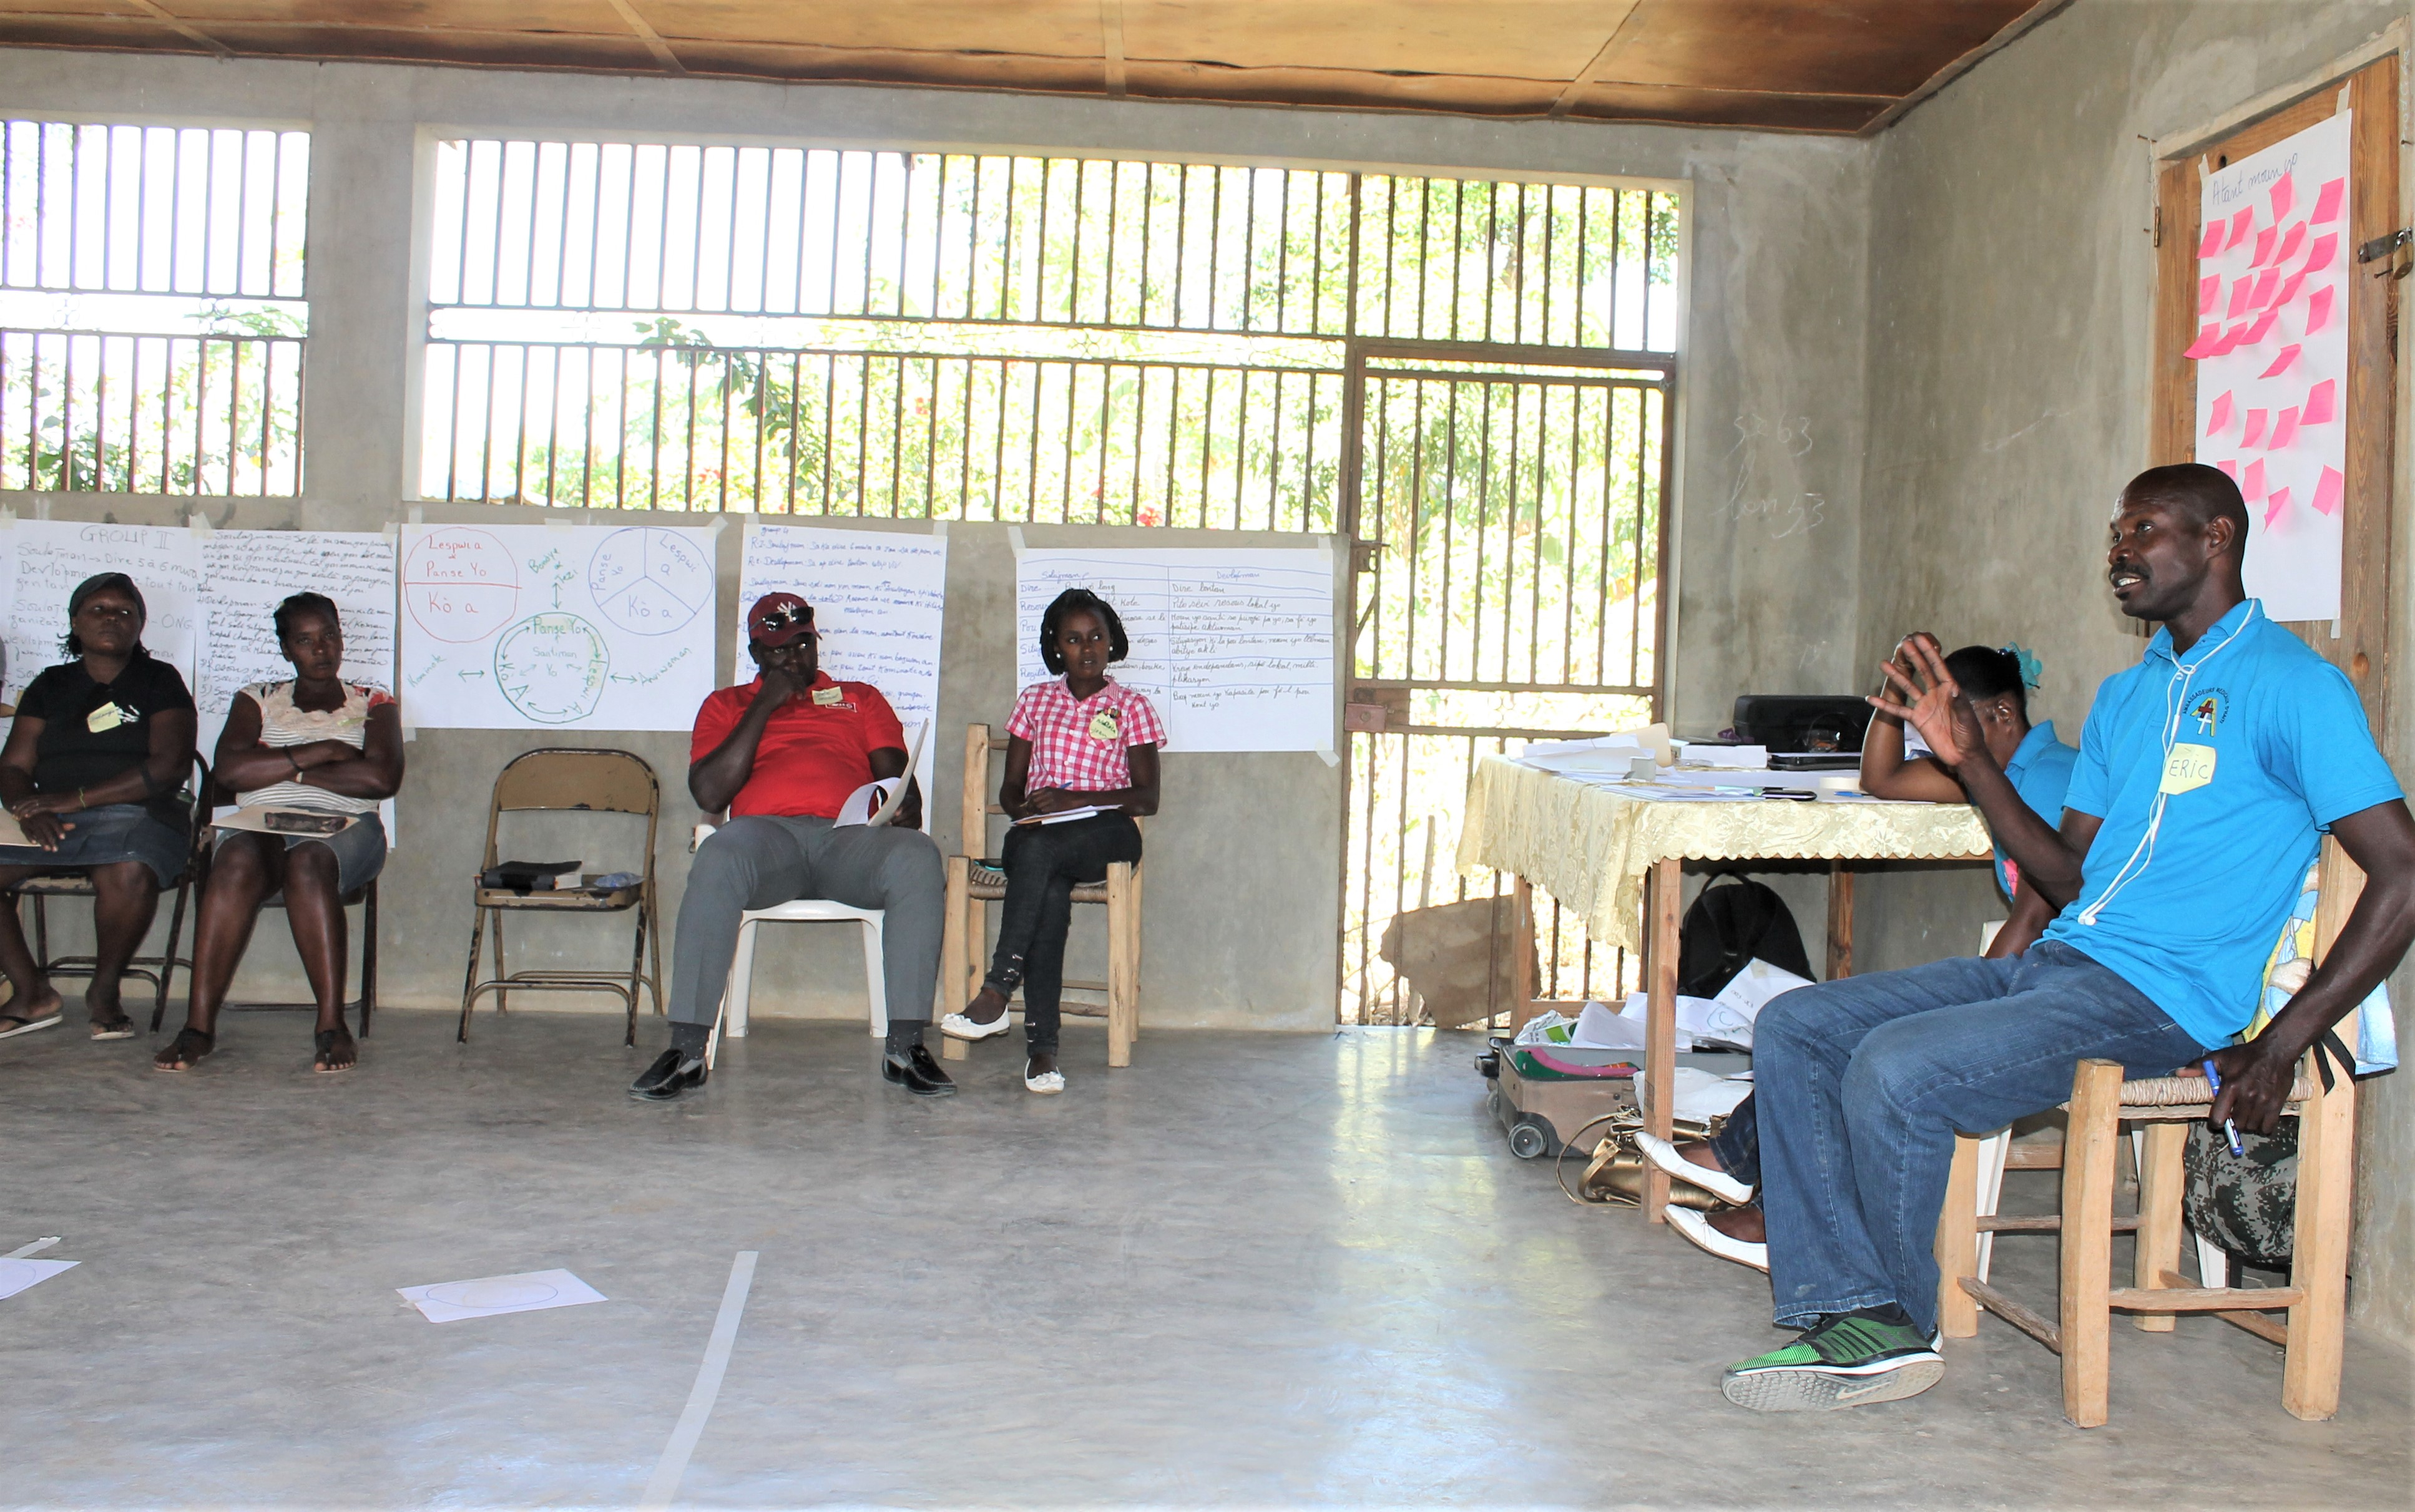 Eric from Medical Ambassadors of Haiti, leading one of the CHE workshop sessions, held in Ecovillage 1 in January 2019.